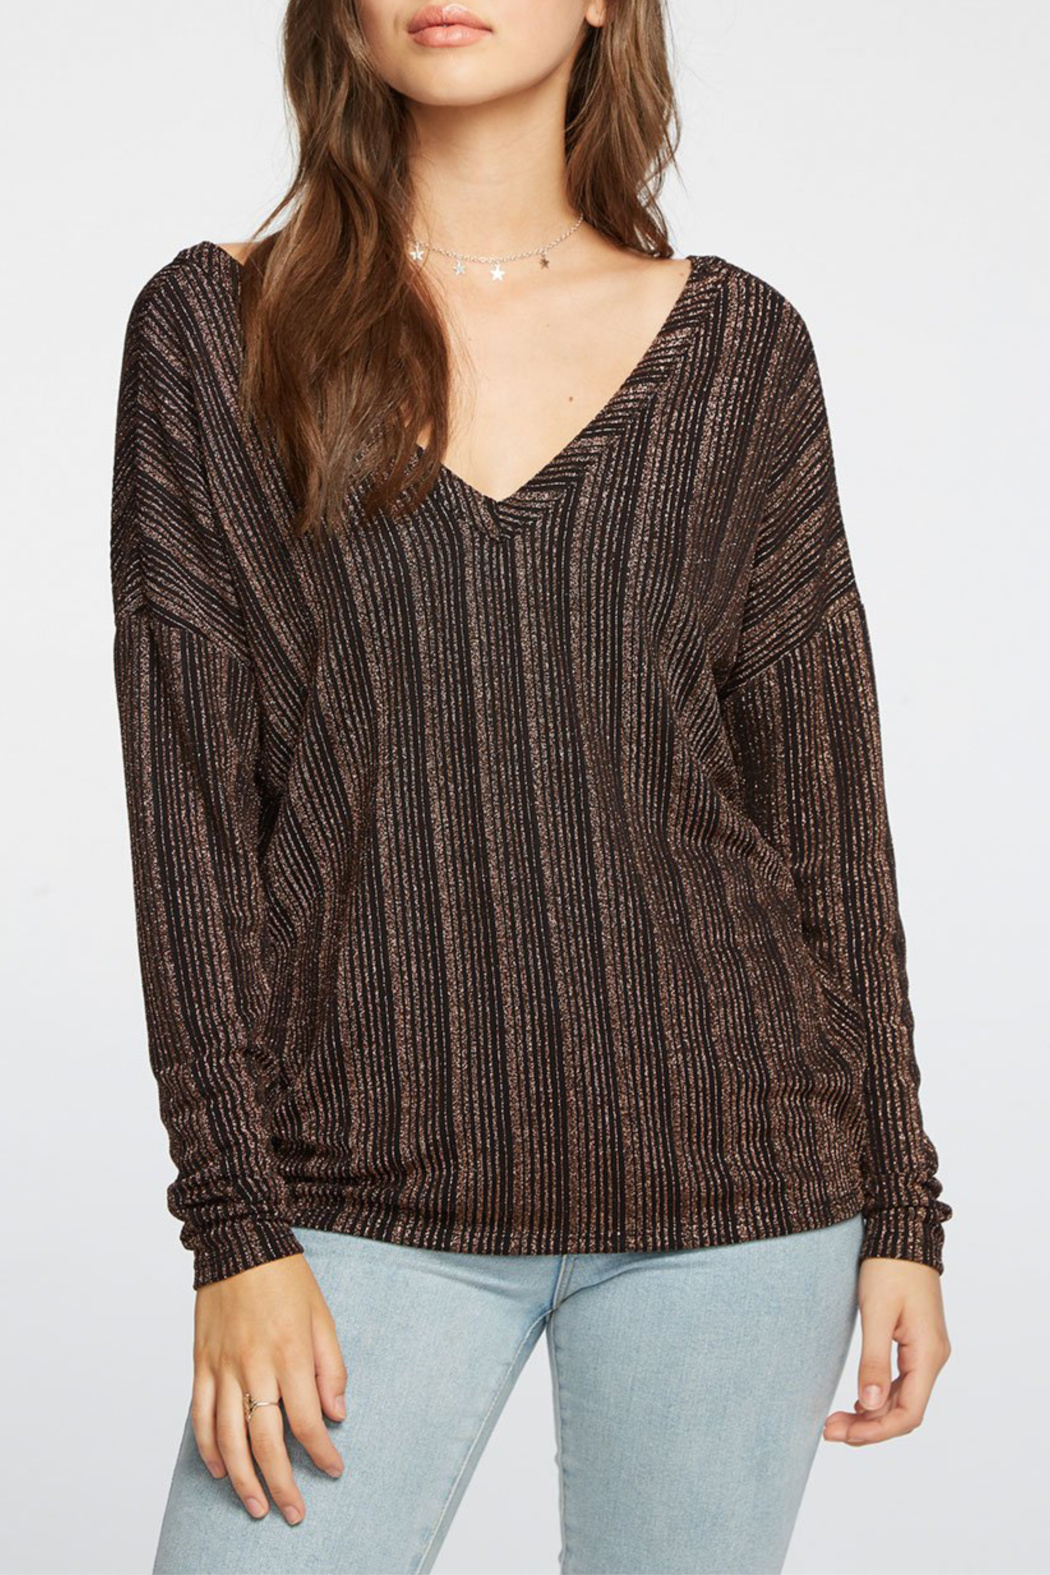 Chaser Metallic Stripe L/S Double V Top - Main Image